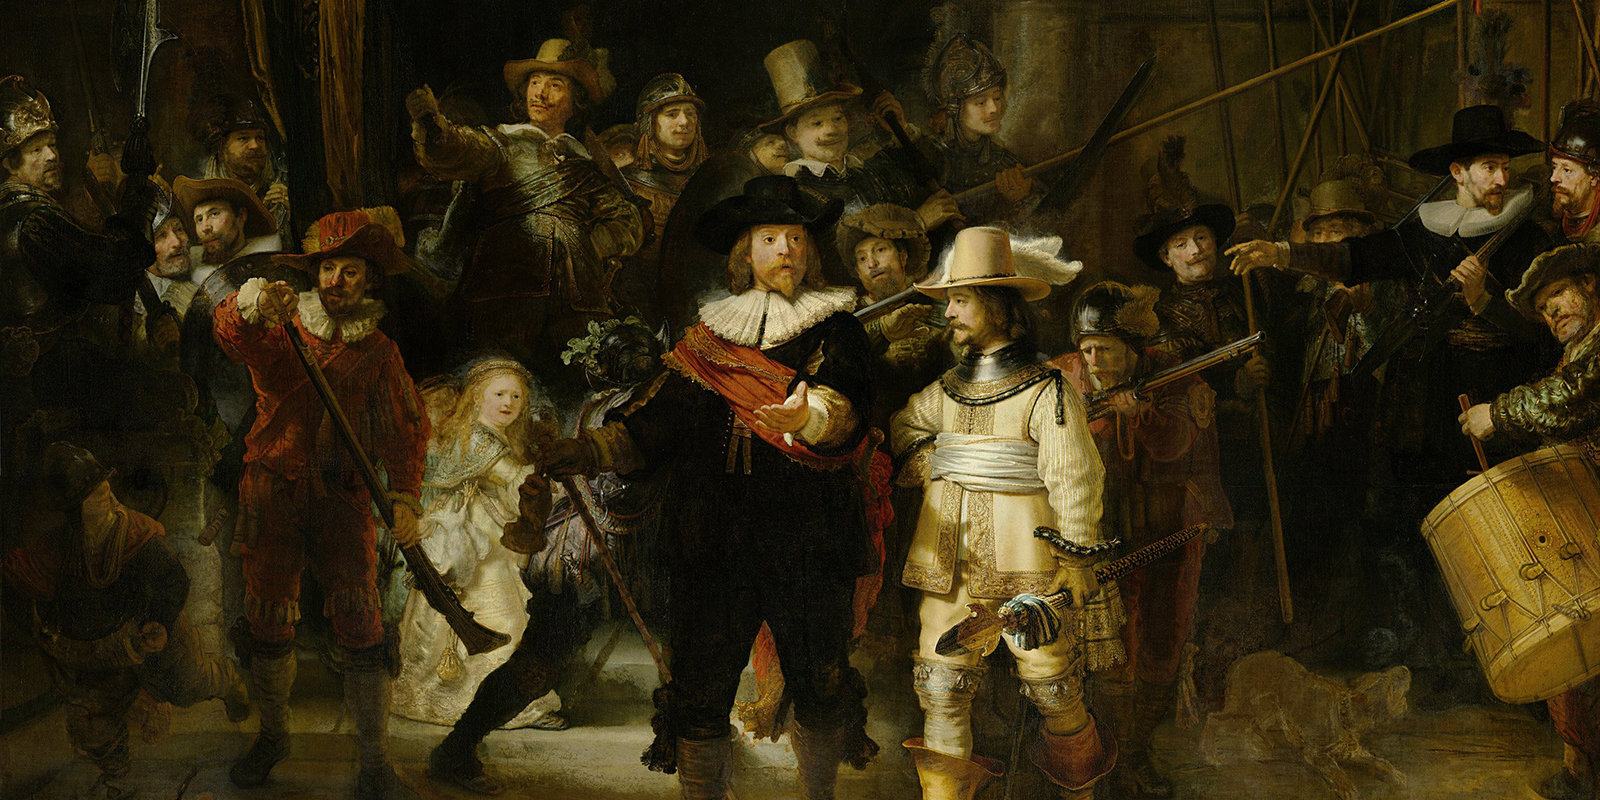 Militia Company (...) Known as the 'Night Watch', Rembrandt Harmenszoon van Rijn, Rijksmuseum, Public Domain Mark